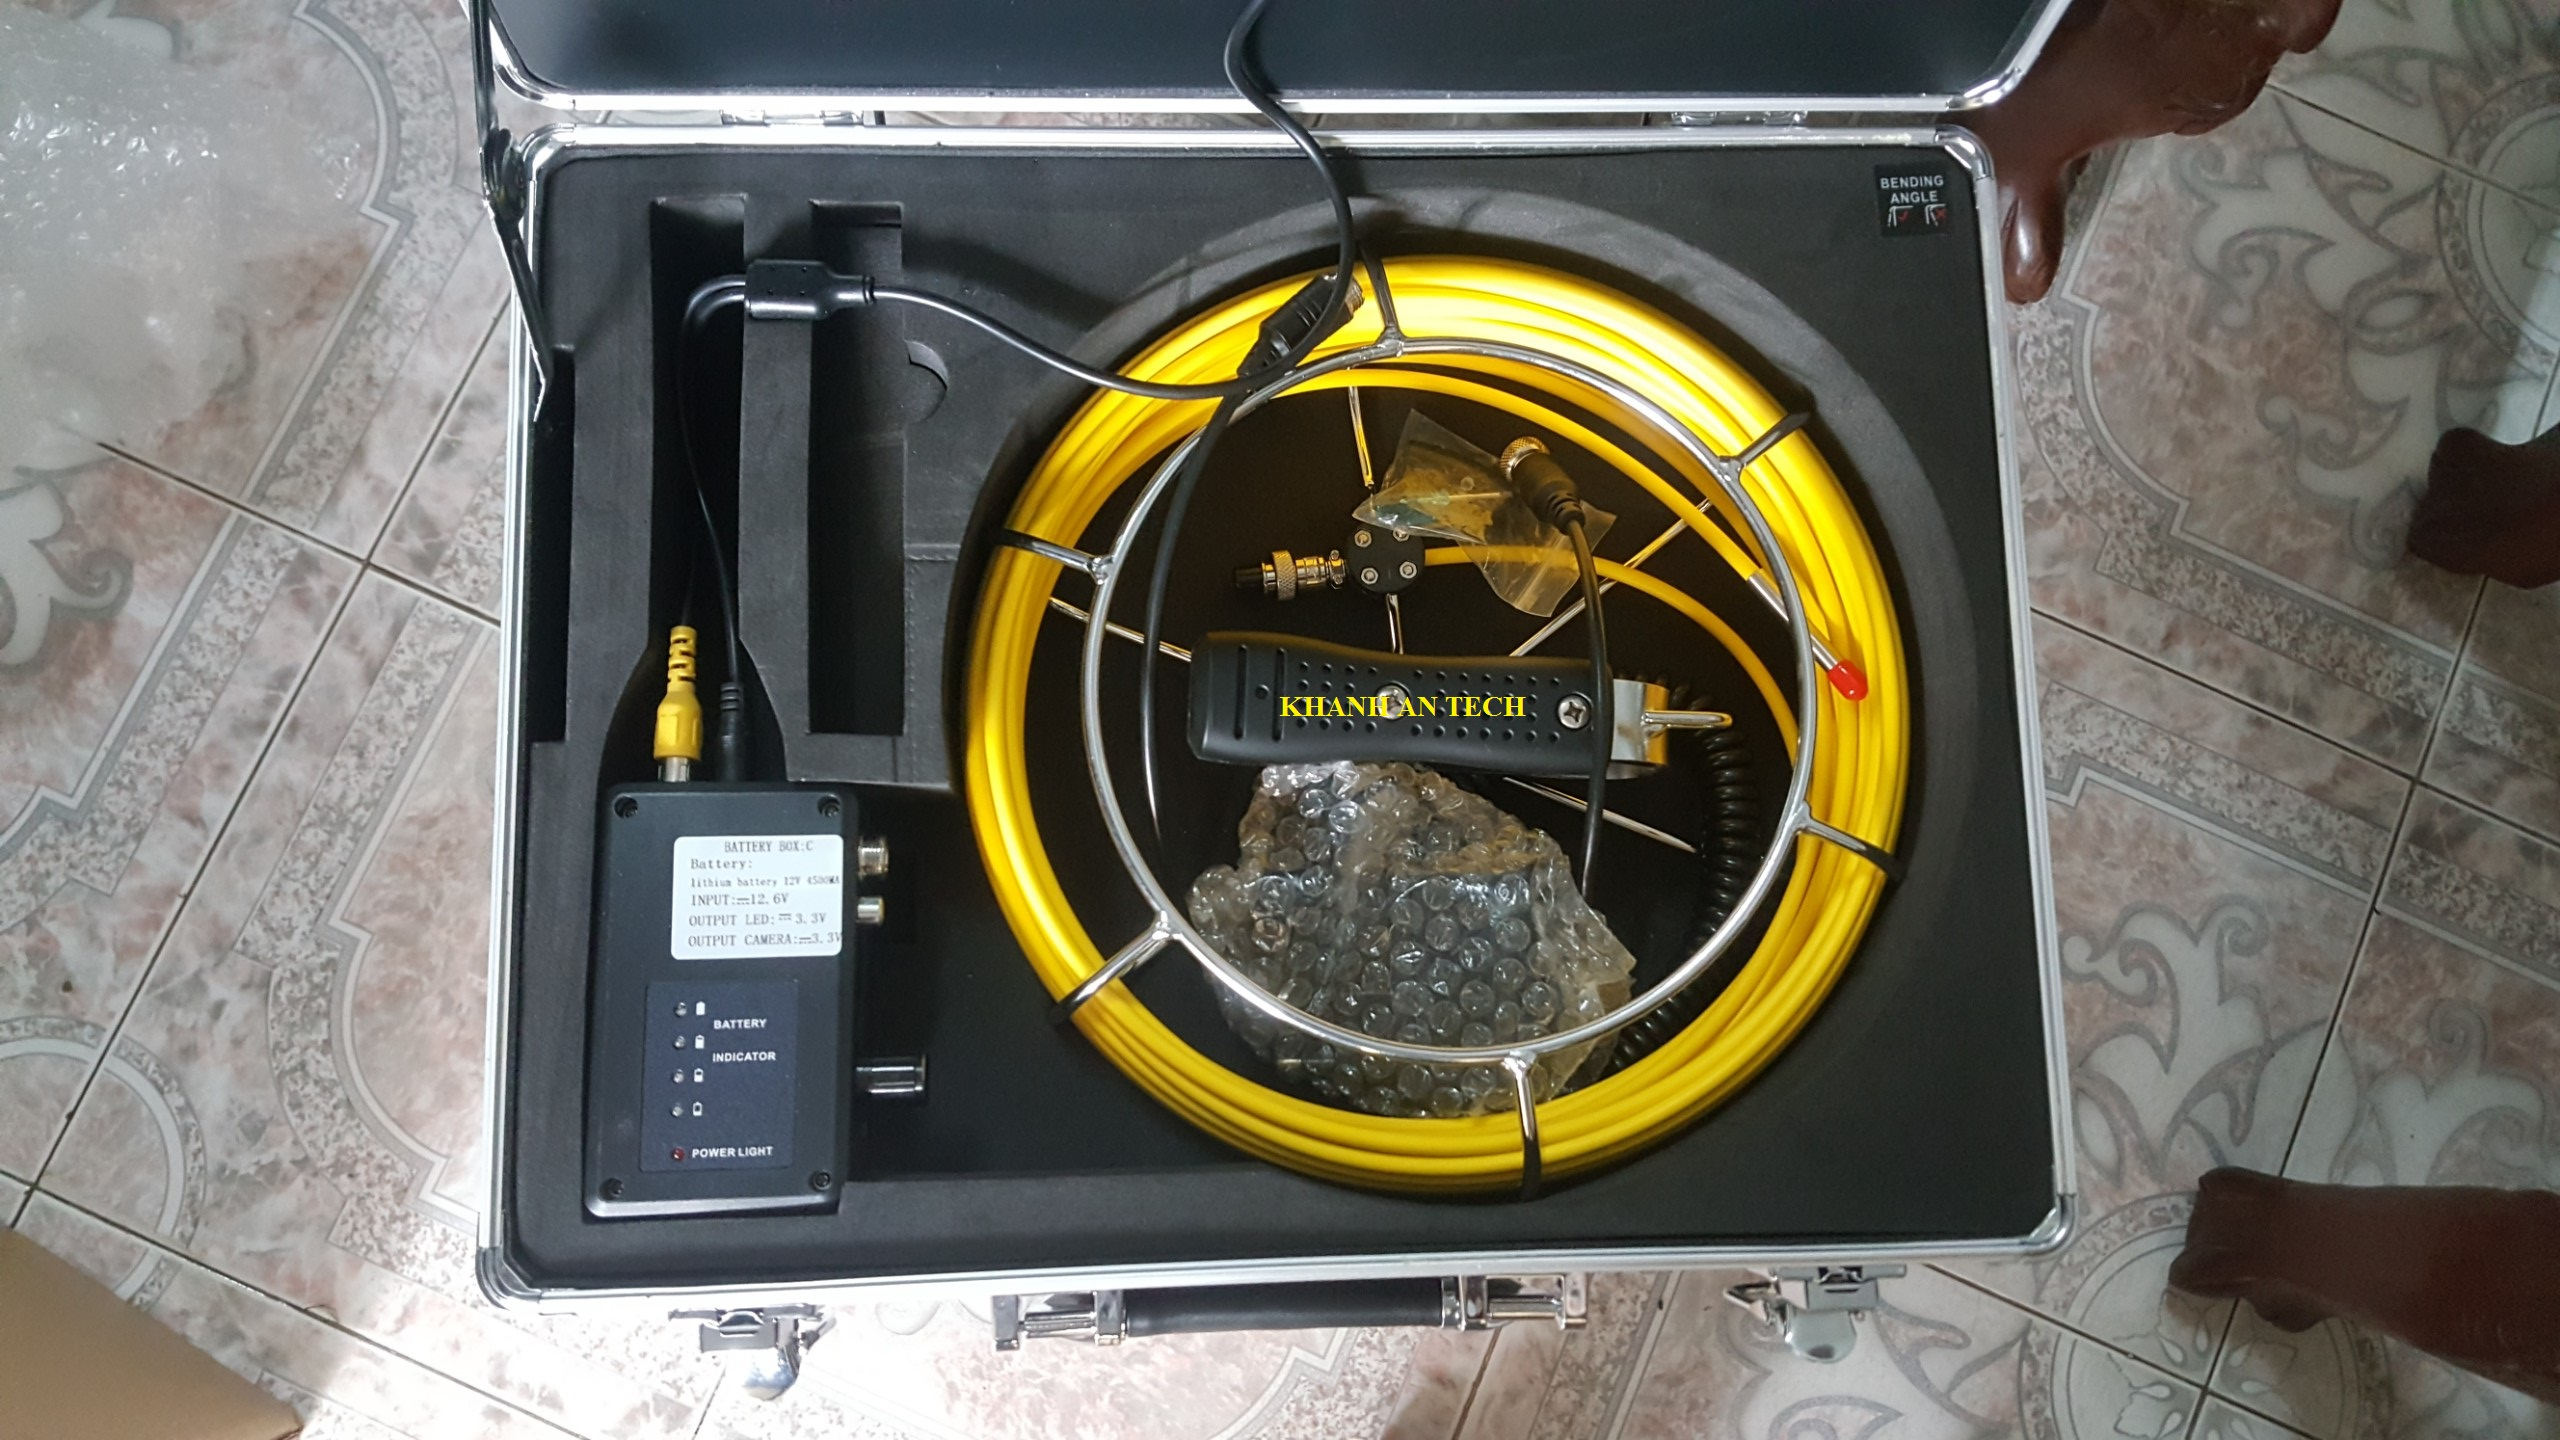 Pipe Inspection system – KHANH AN